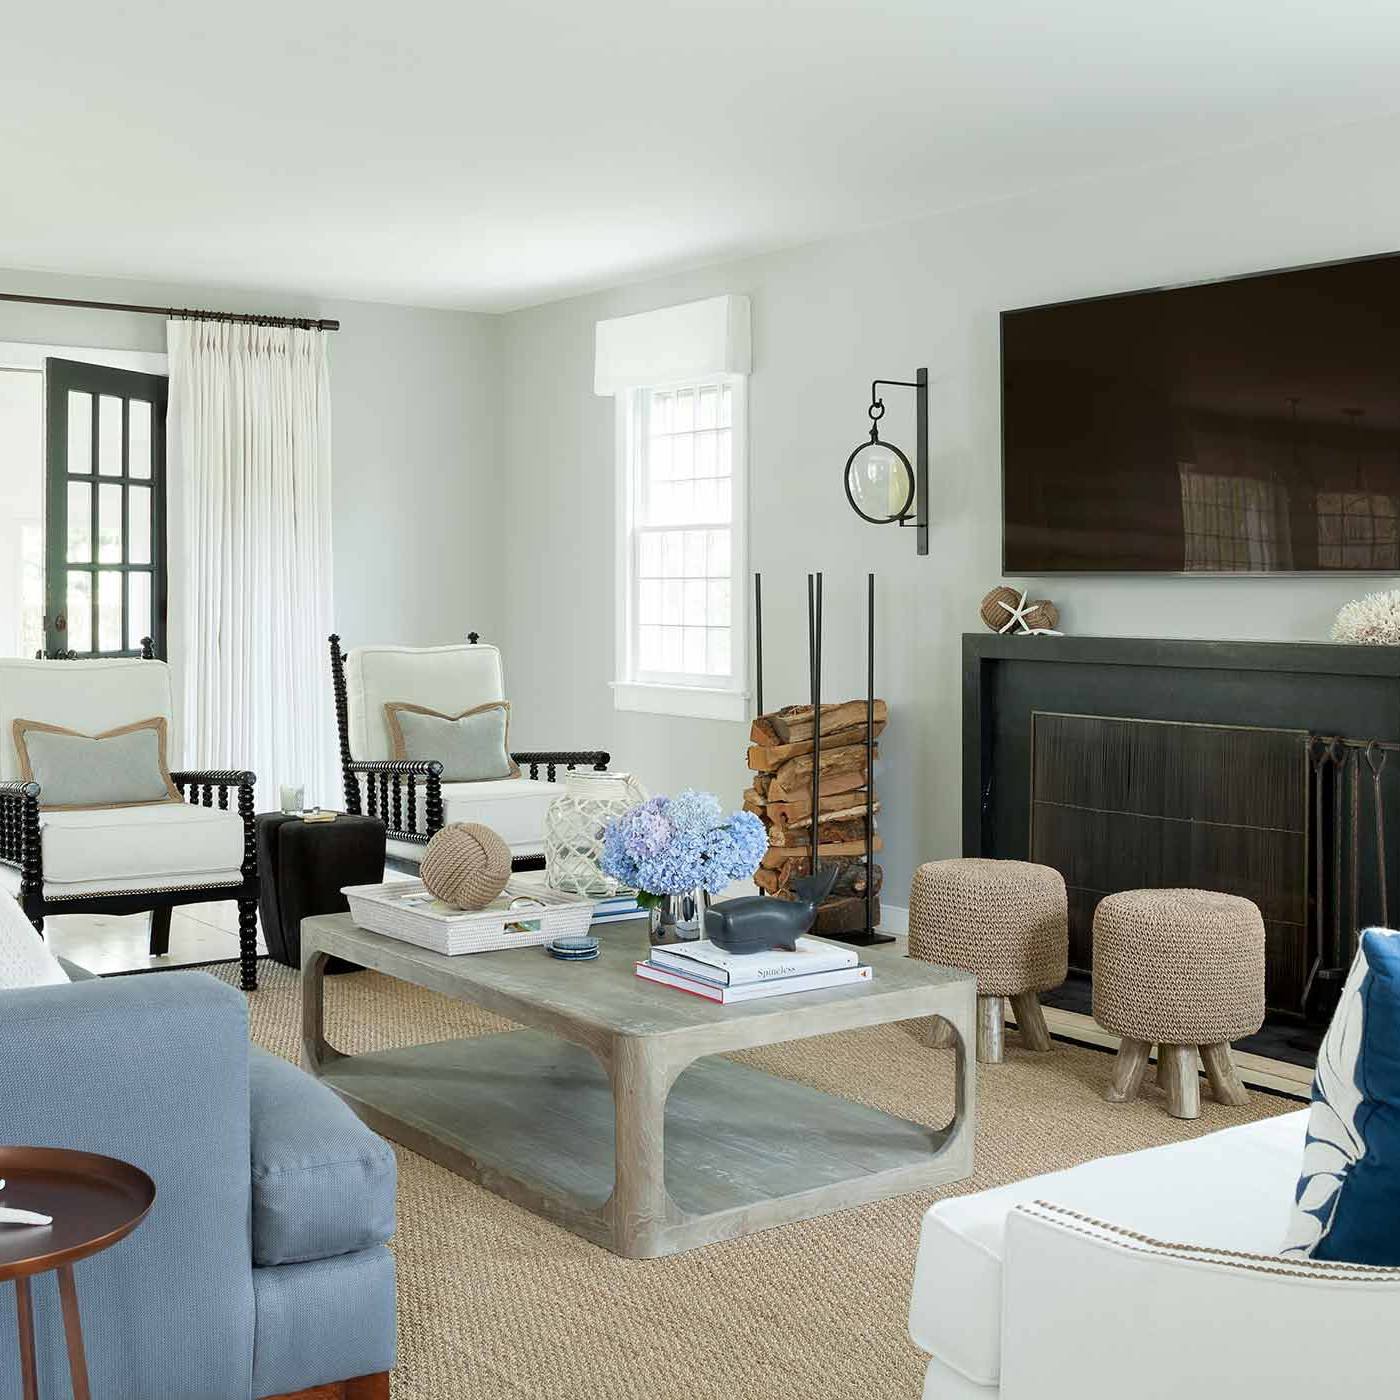 Living room with an array of sofas, chairs, and stools in Bridgehampton designed by Darci Hether New York